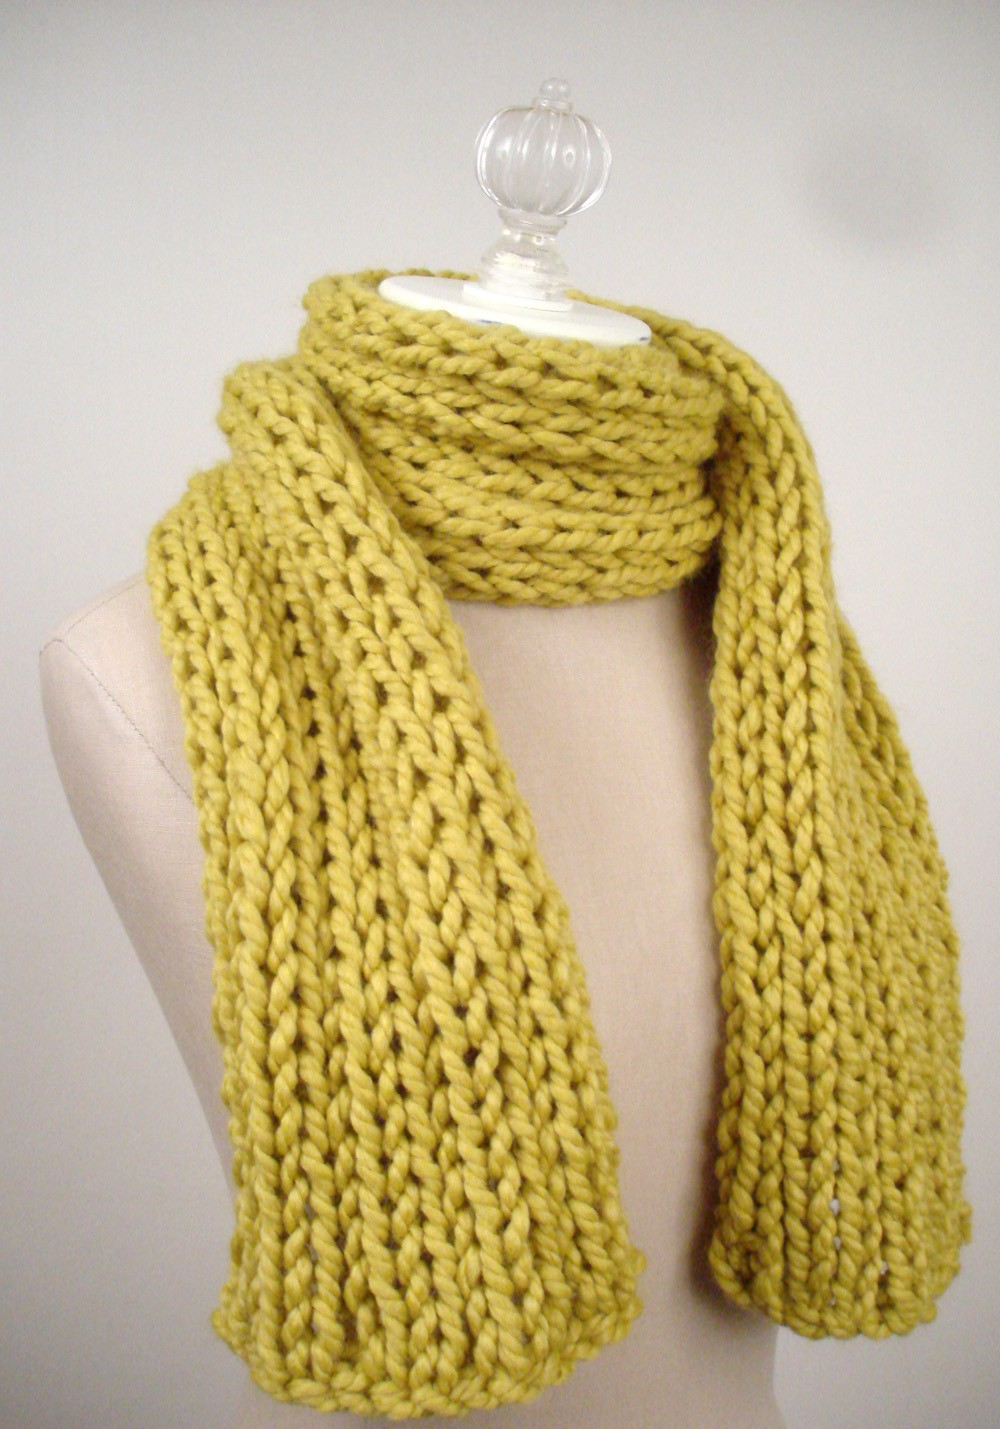 Scarf Knitting Pattern-Single-Rib Chenille Scarf Easy Knitting